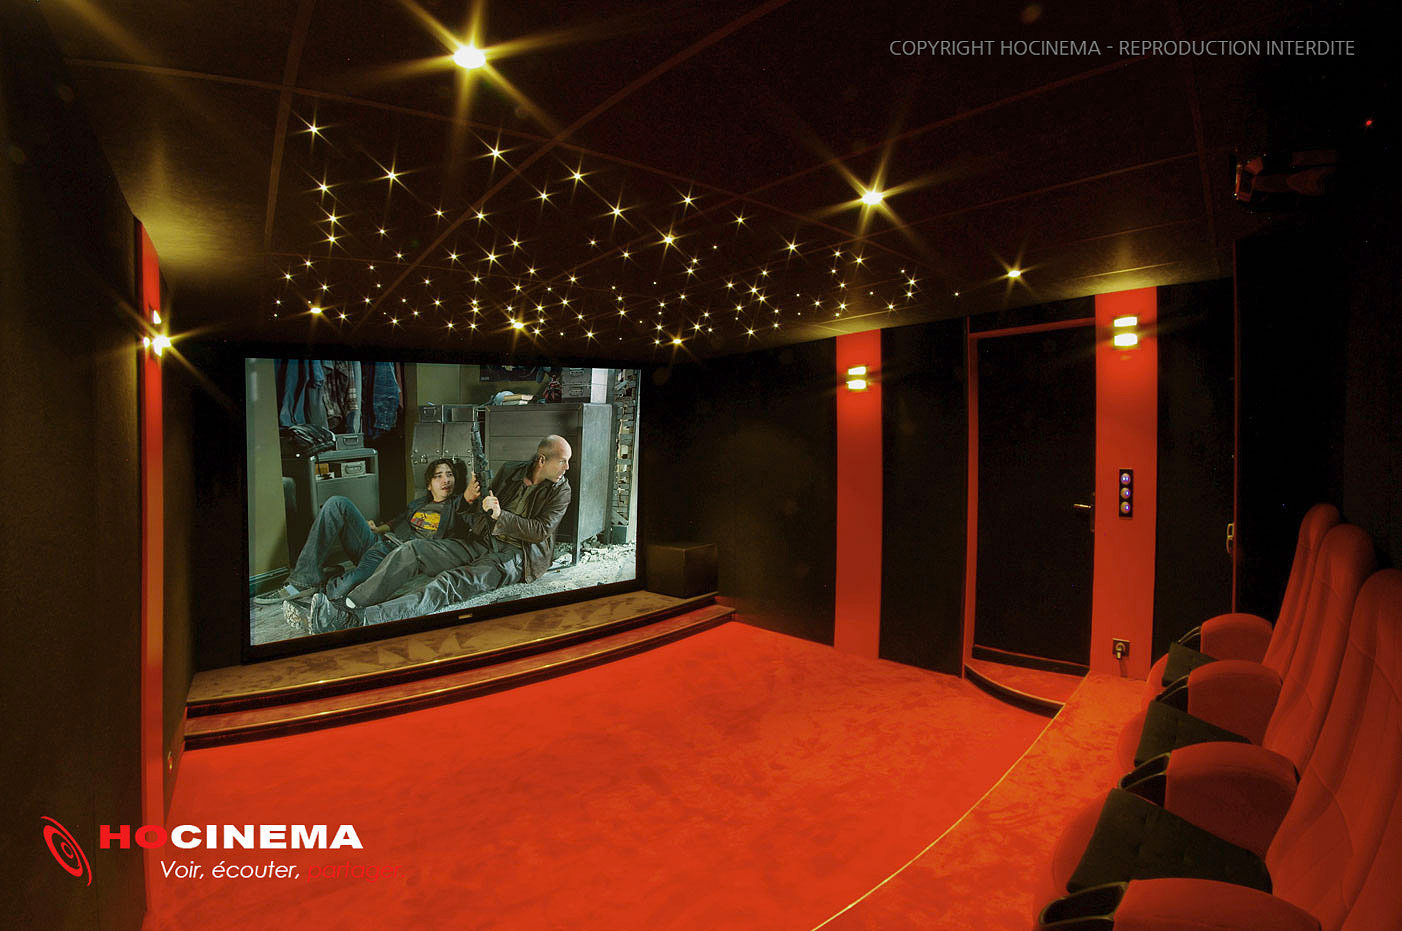 Hocinema la salle de cin ma maison phoenix en d tail for Salle cinema maison